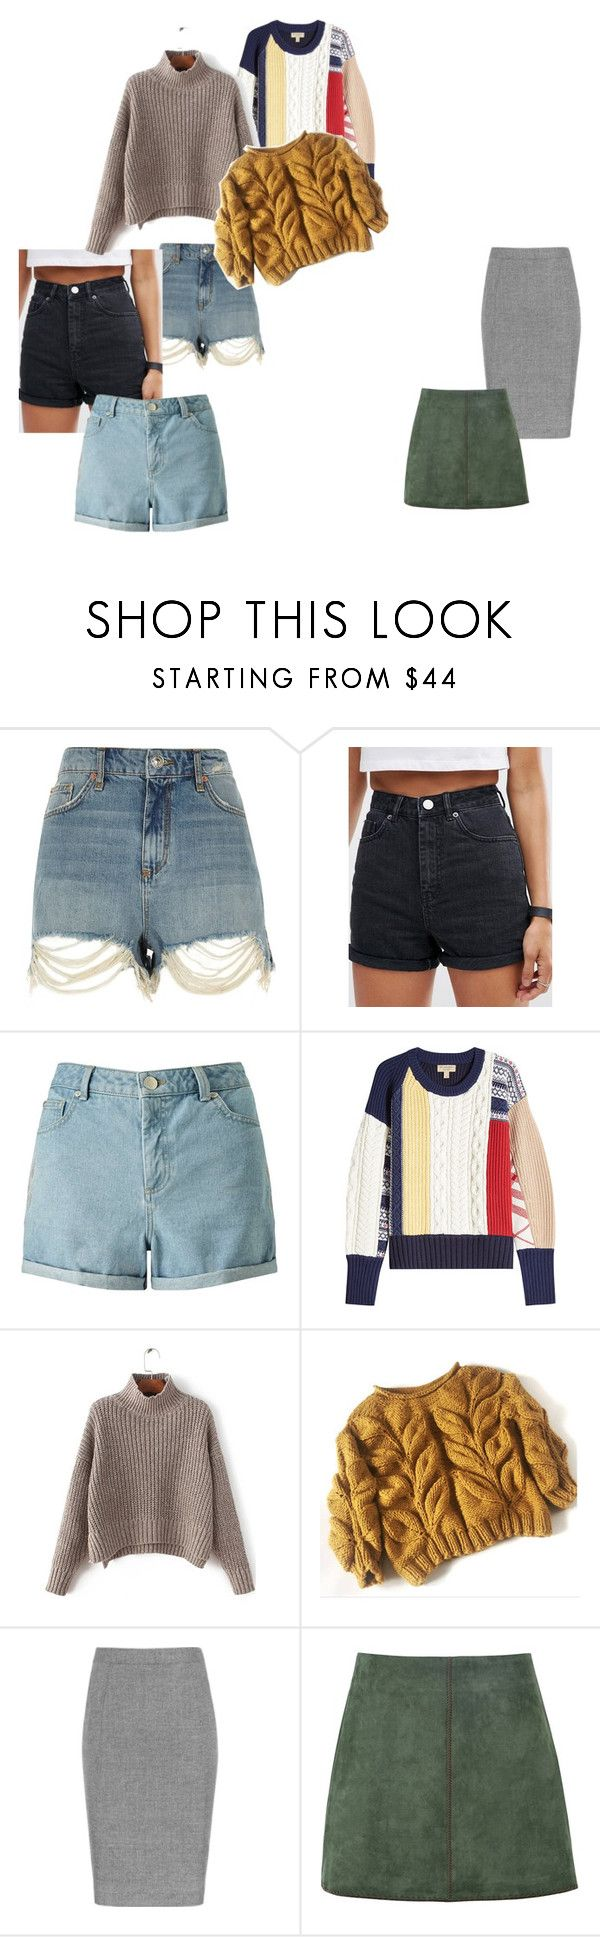 """?"" by iselinln on Polyvore featuring River Island, ASOS, Miss Selfridge, Burberry and George J. Love"